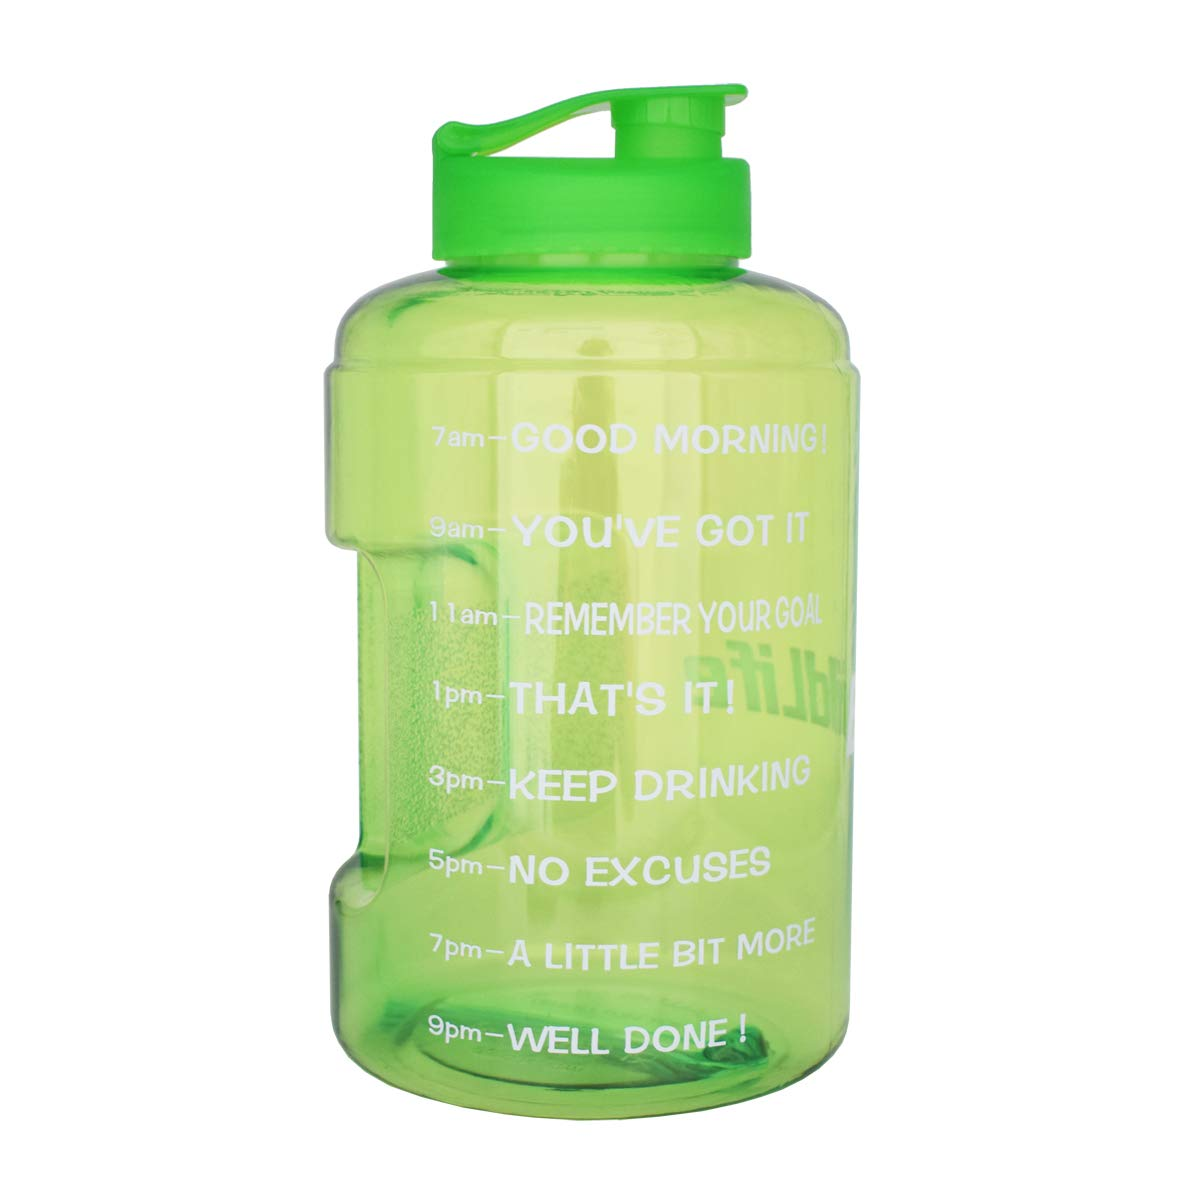 BuildLife 1 Gallon(128OZ) Sports Water Bottle Inspirational Fitness Workout Wide Mouth with Time Marker for Measuring Your H2O Intake BPA Free (1 Gallon, Green+Green lid)